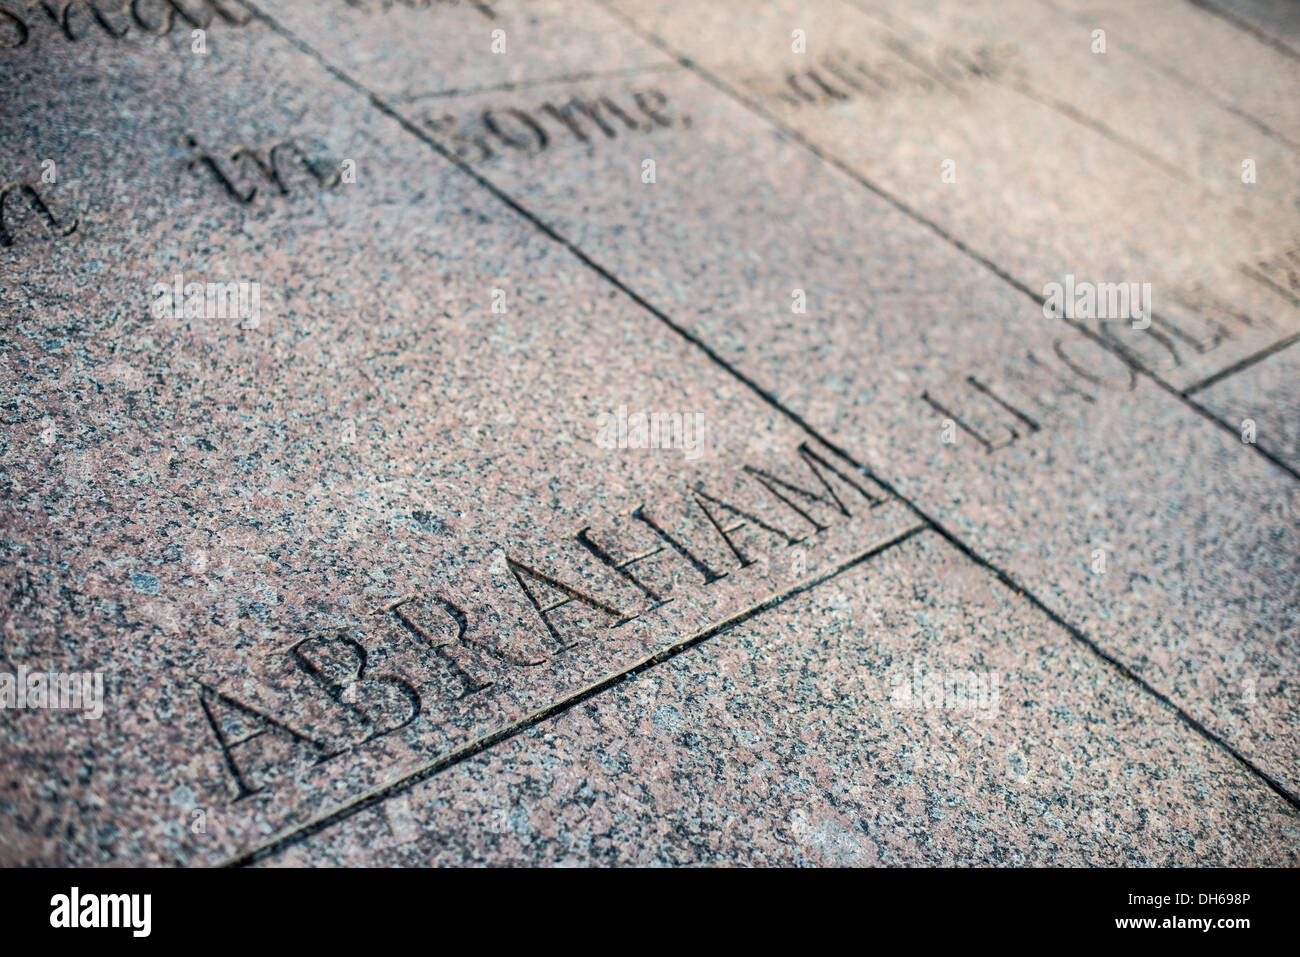 WASHINGTON DC, USA - The inscription of Abraham Lincoln's name beneath a quote by the former president carved into the granite paving at Freedom Plaza on Pennsylvania Avenue in downtown Washington DC. - Stock Image